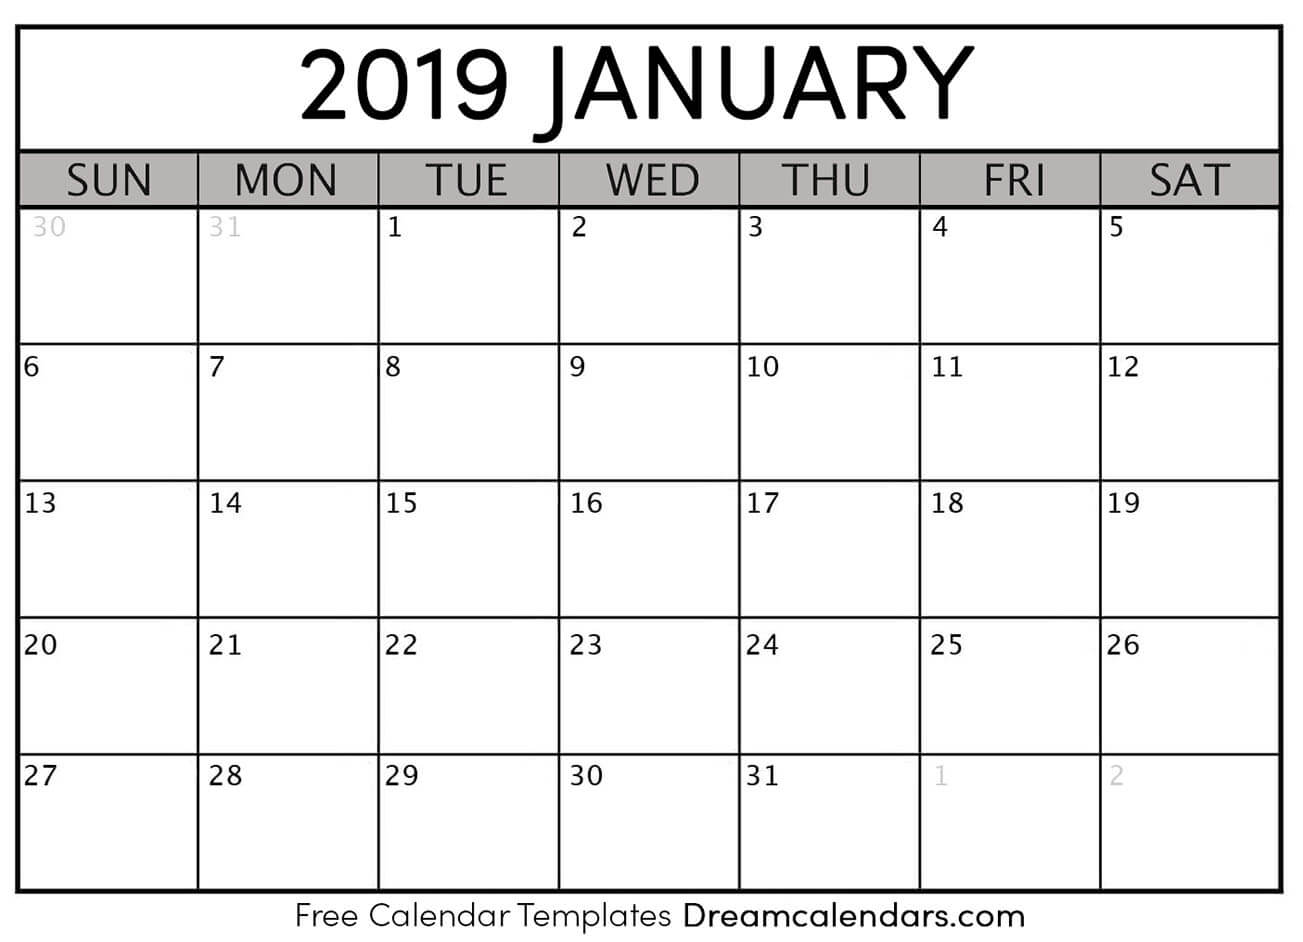 image about January Calendar Printable identified as Printable January 2019 Calendar